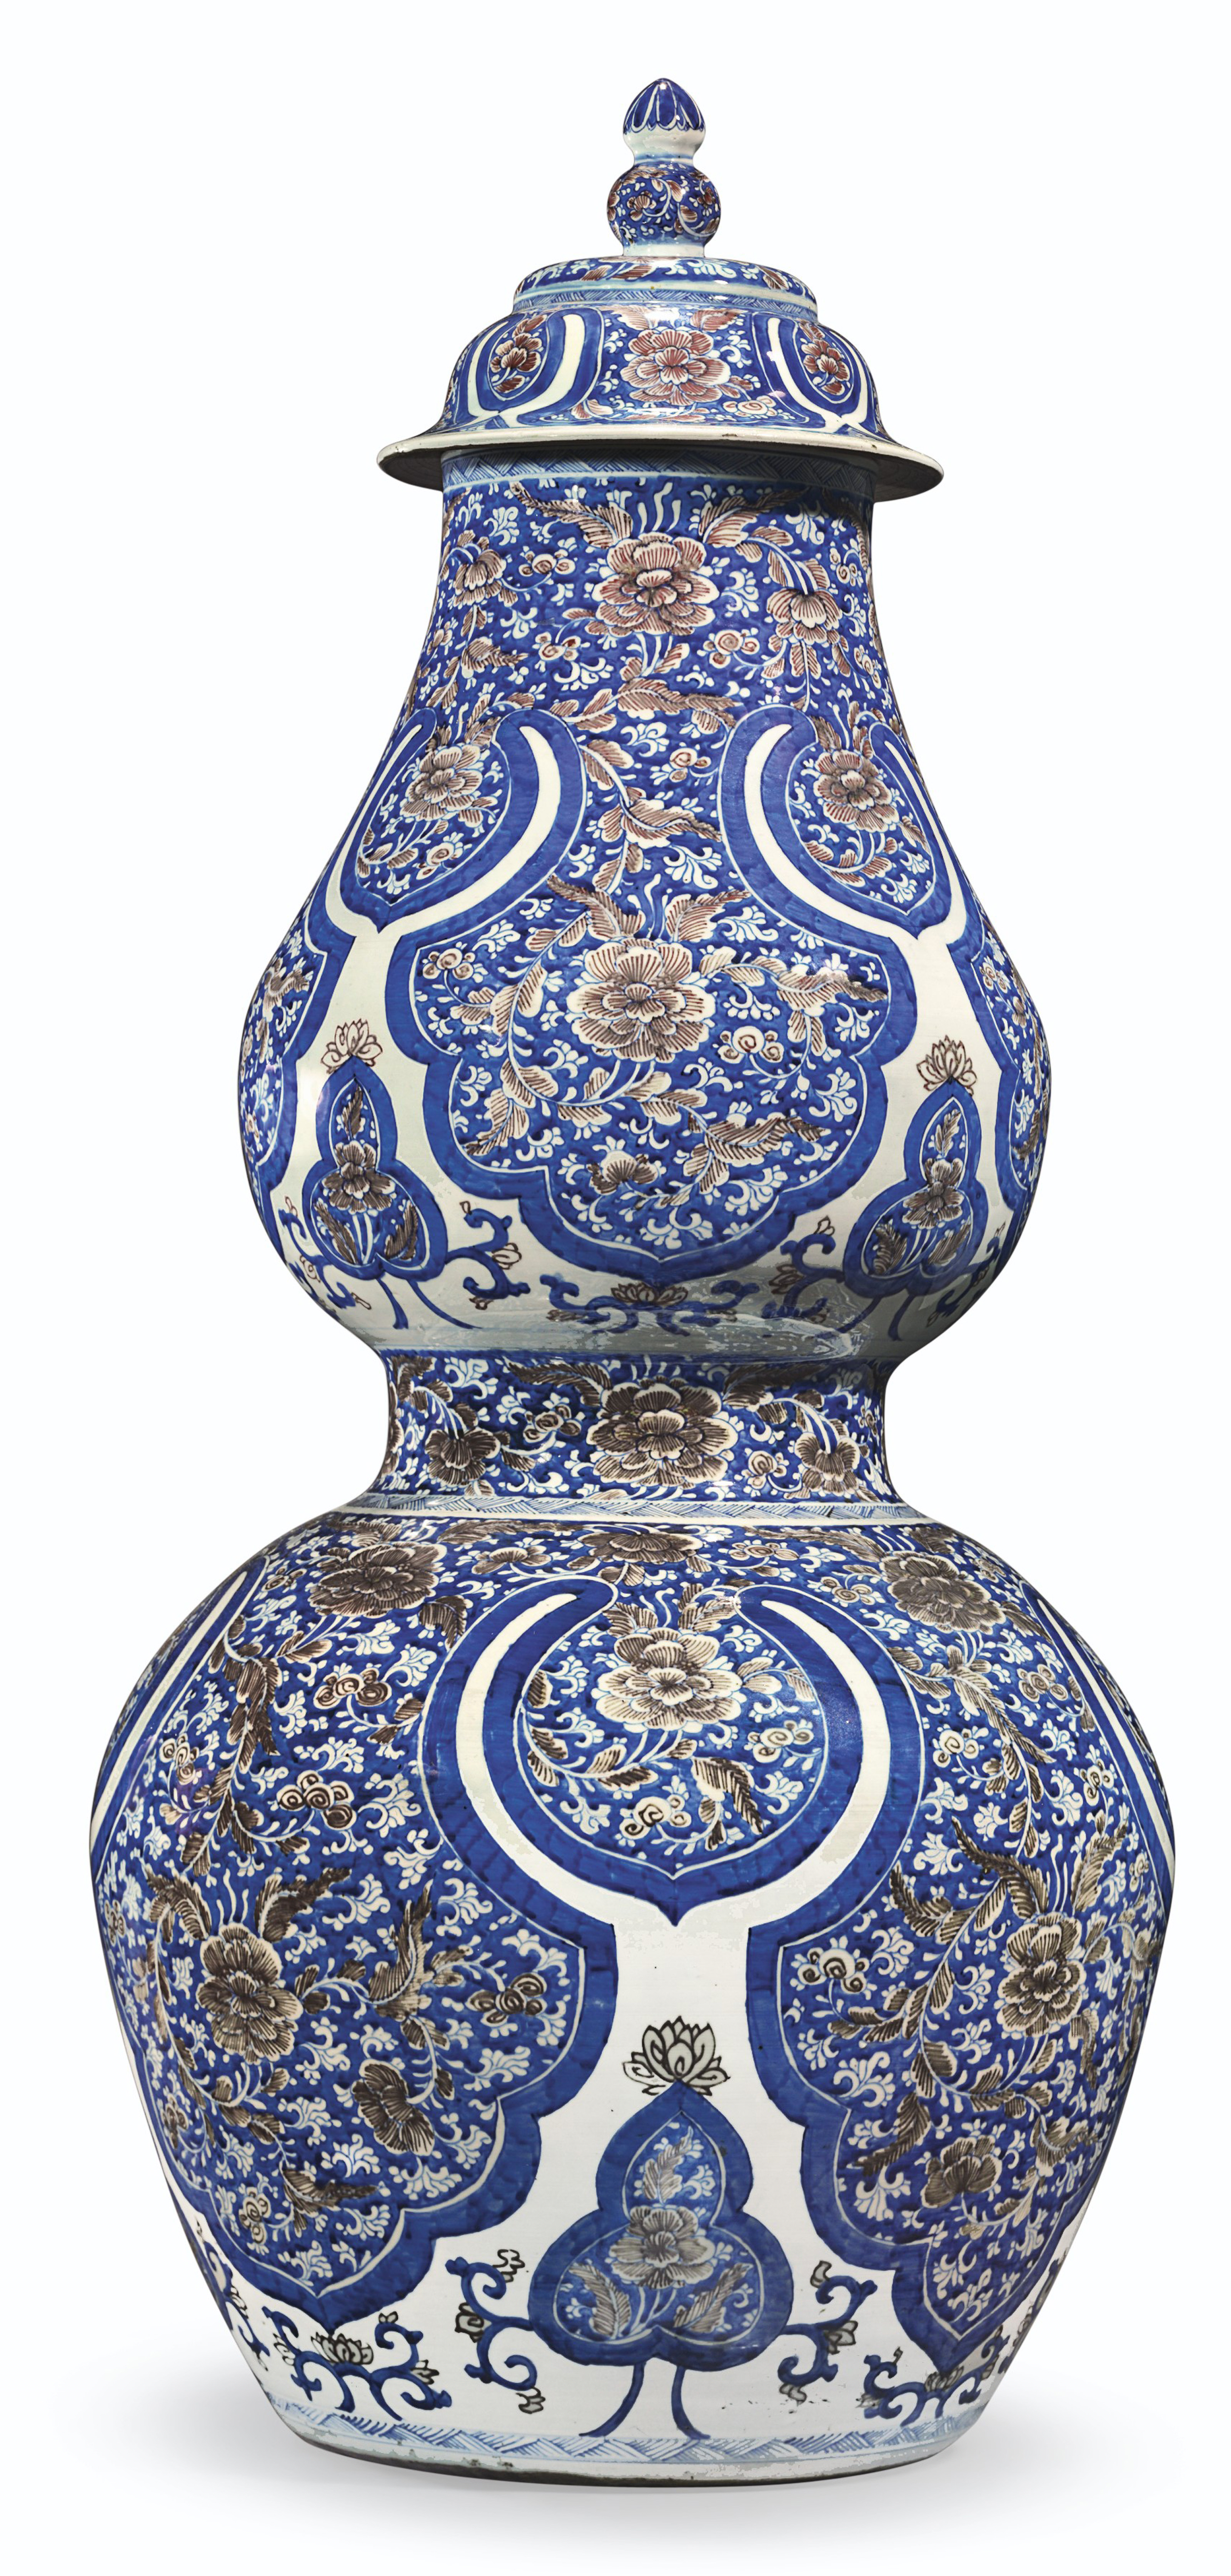 A MASSIVE PAIR OF CHINESE PORCELAIN DOUBLE-GOURD VASES AND COVERS